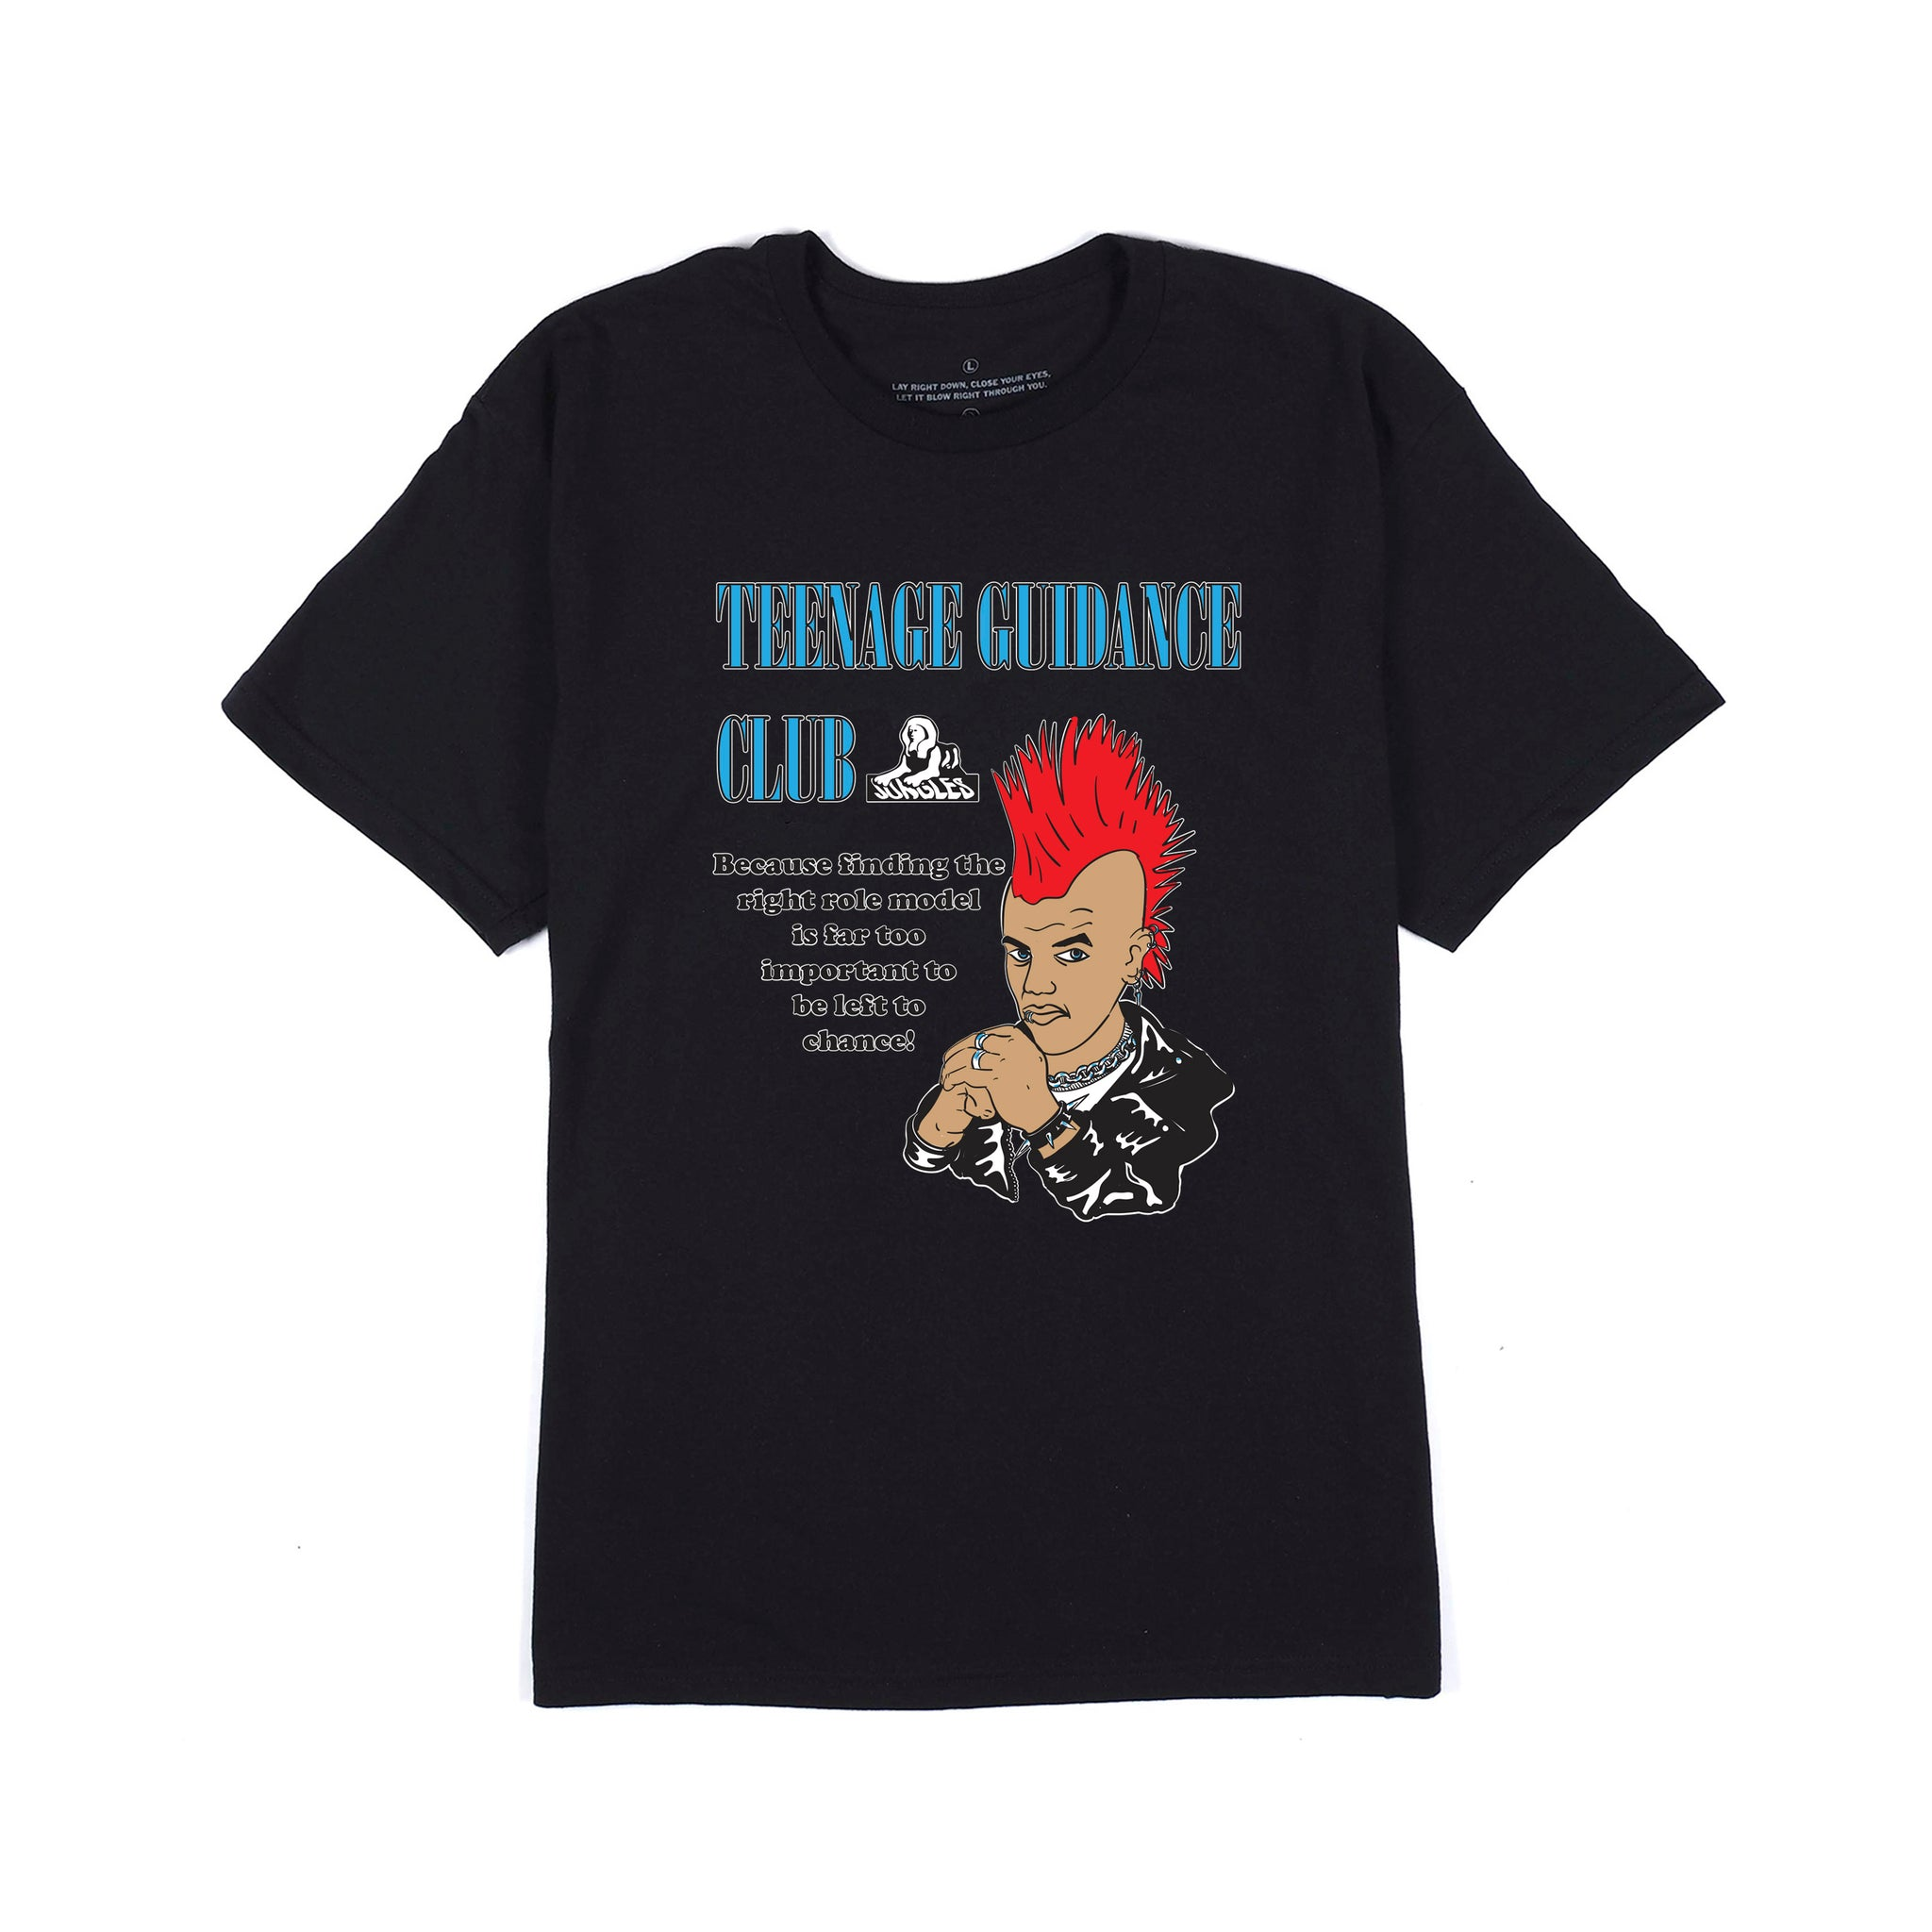 Teenage Guidance SS tee black